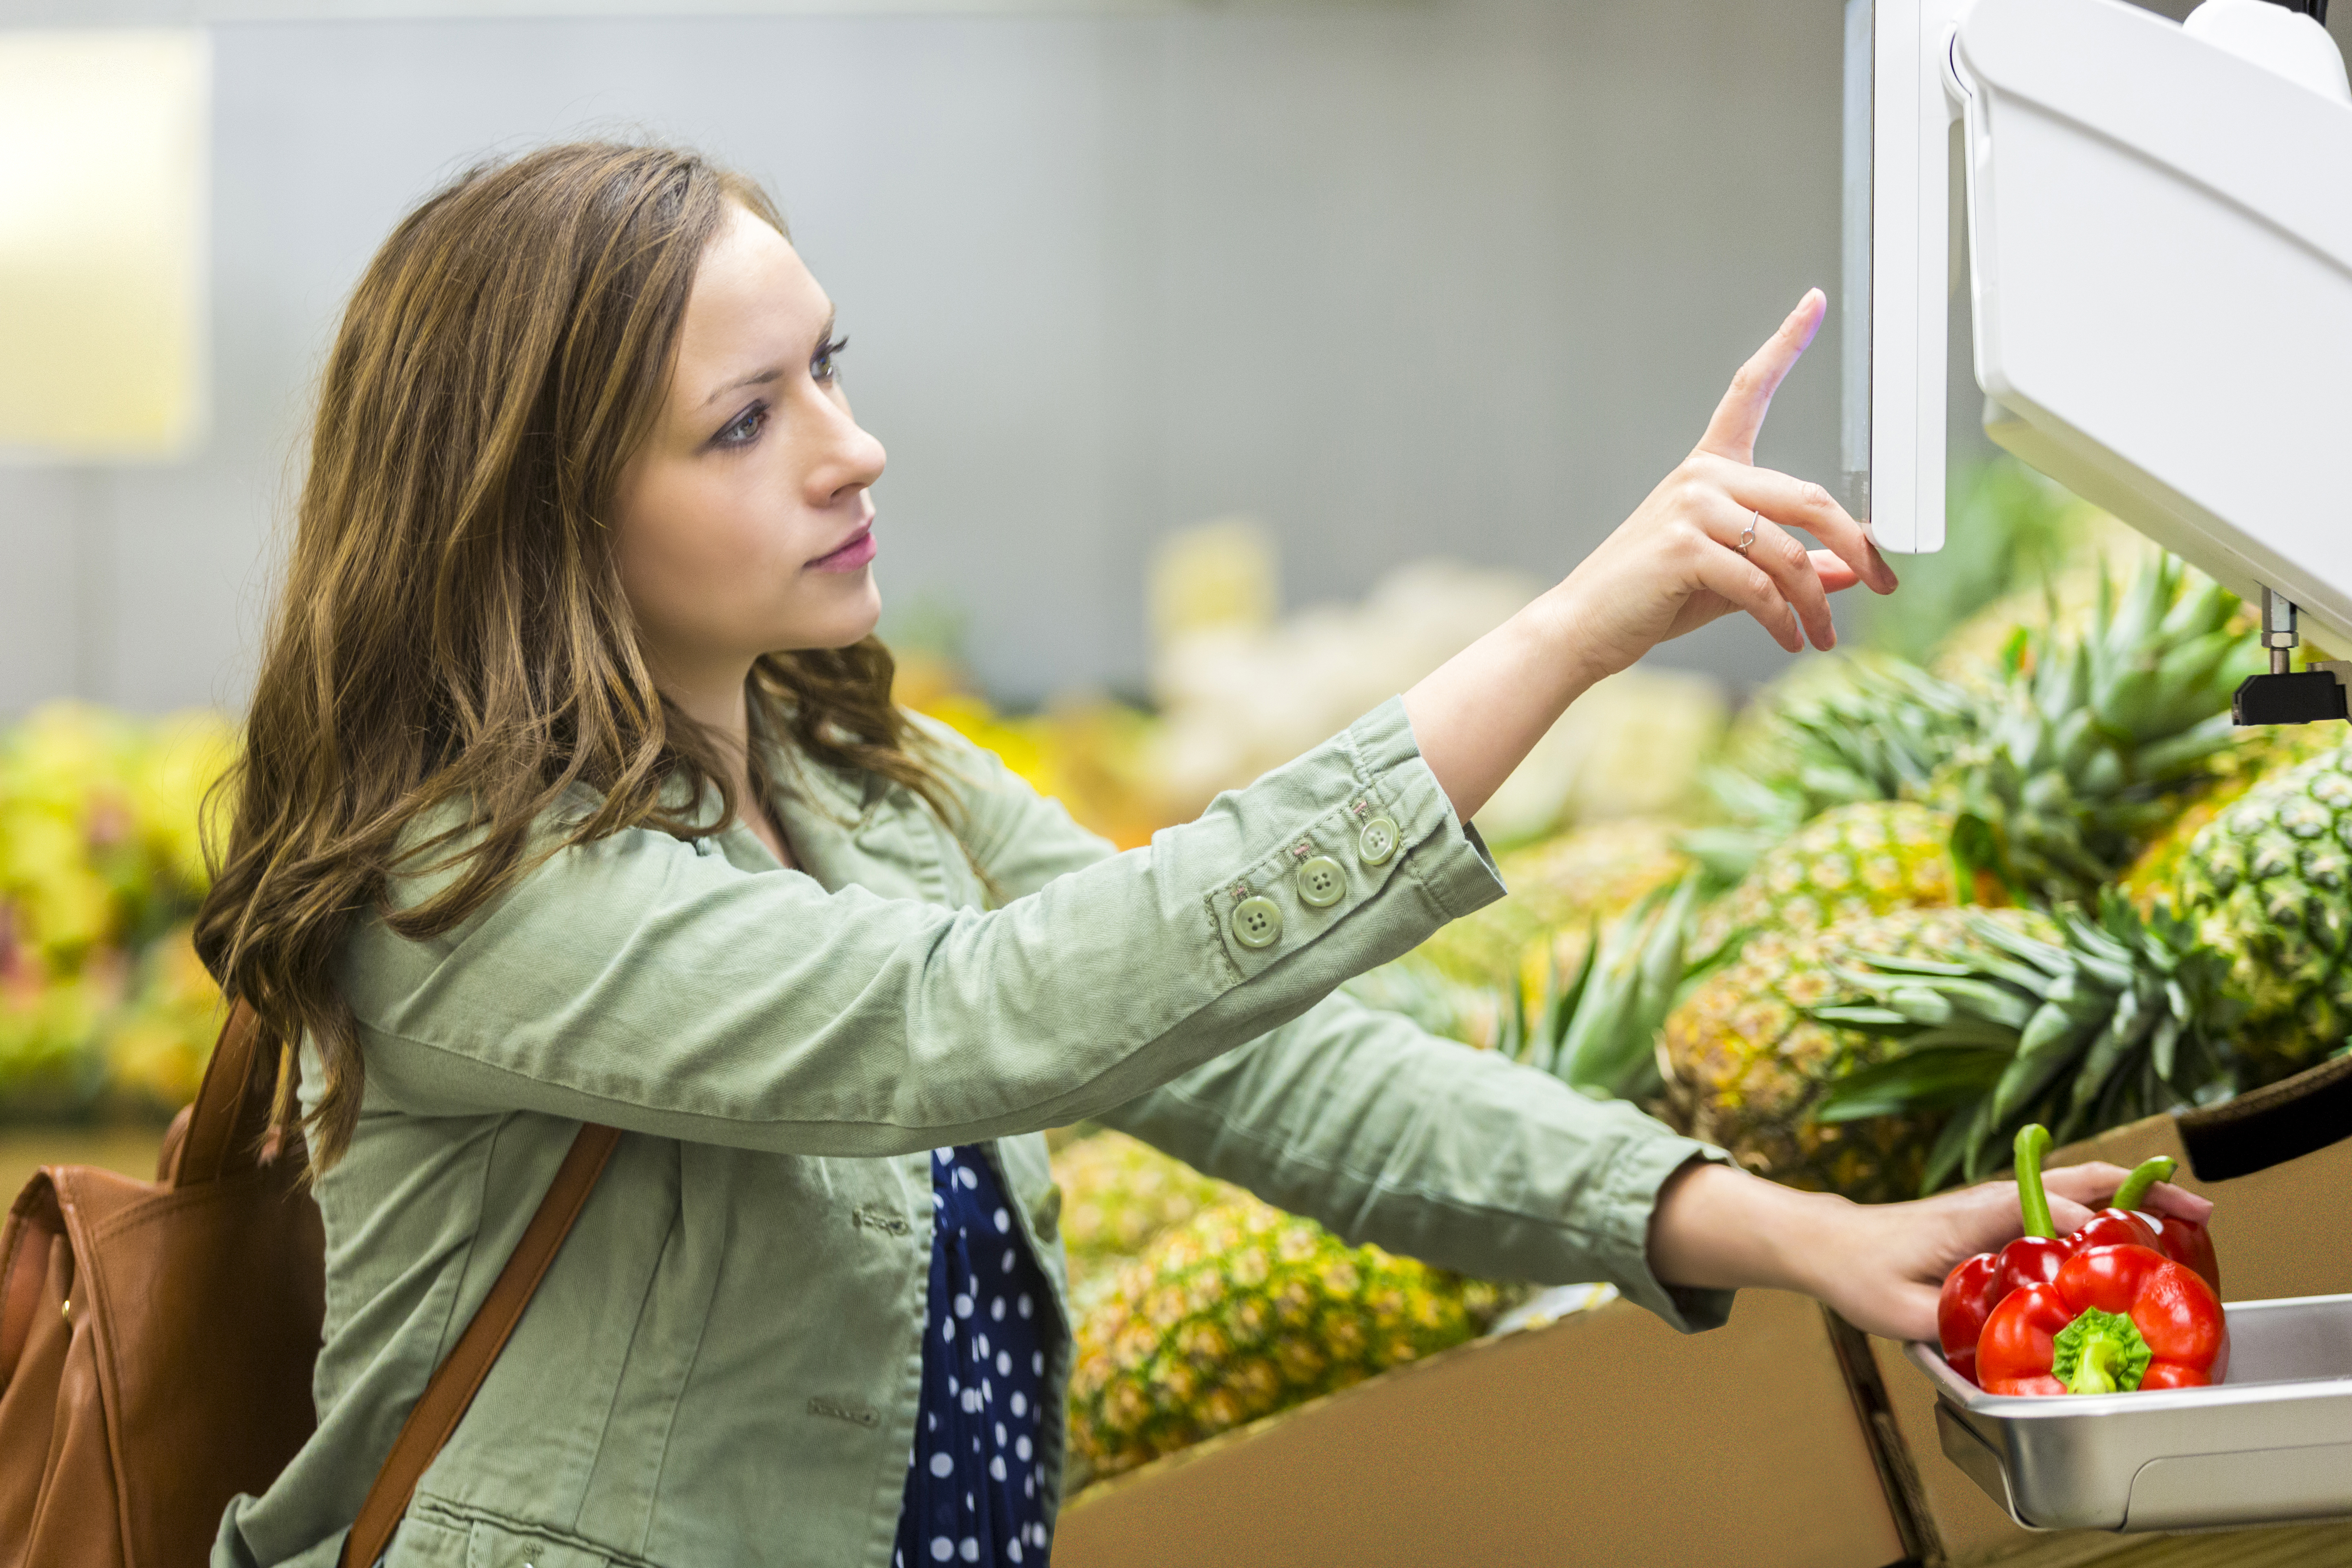 IoT in retail: the food retail industry